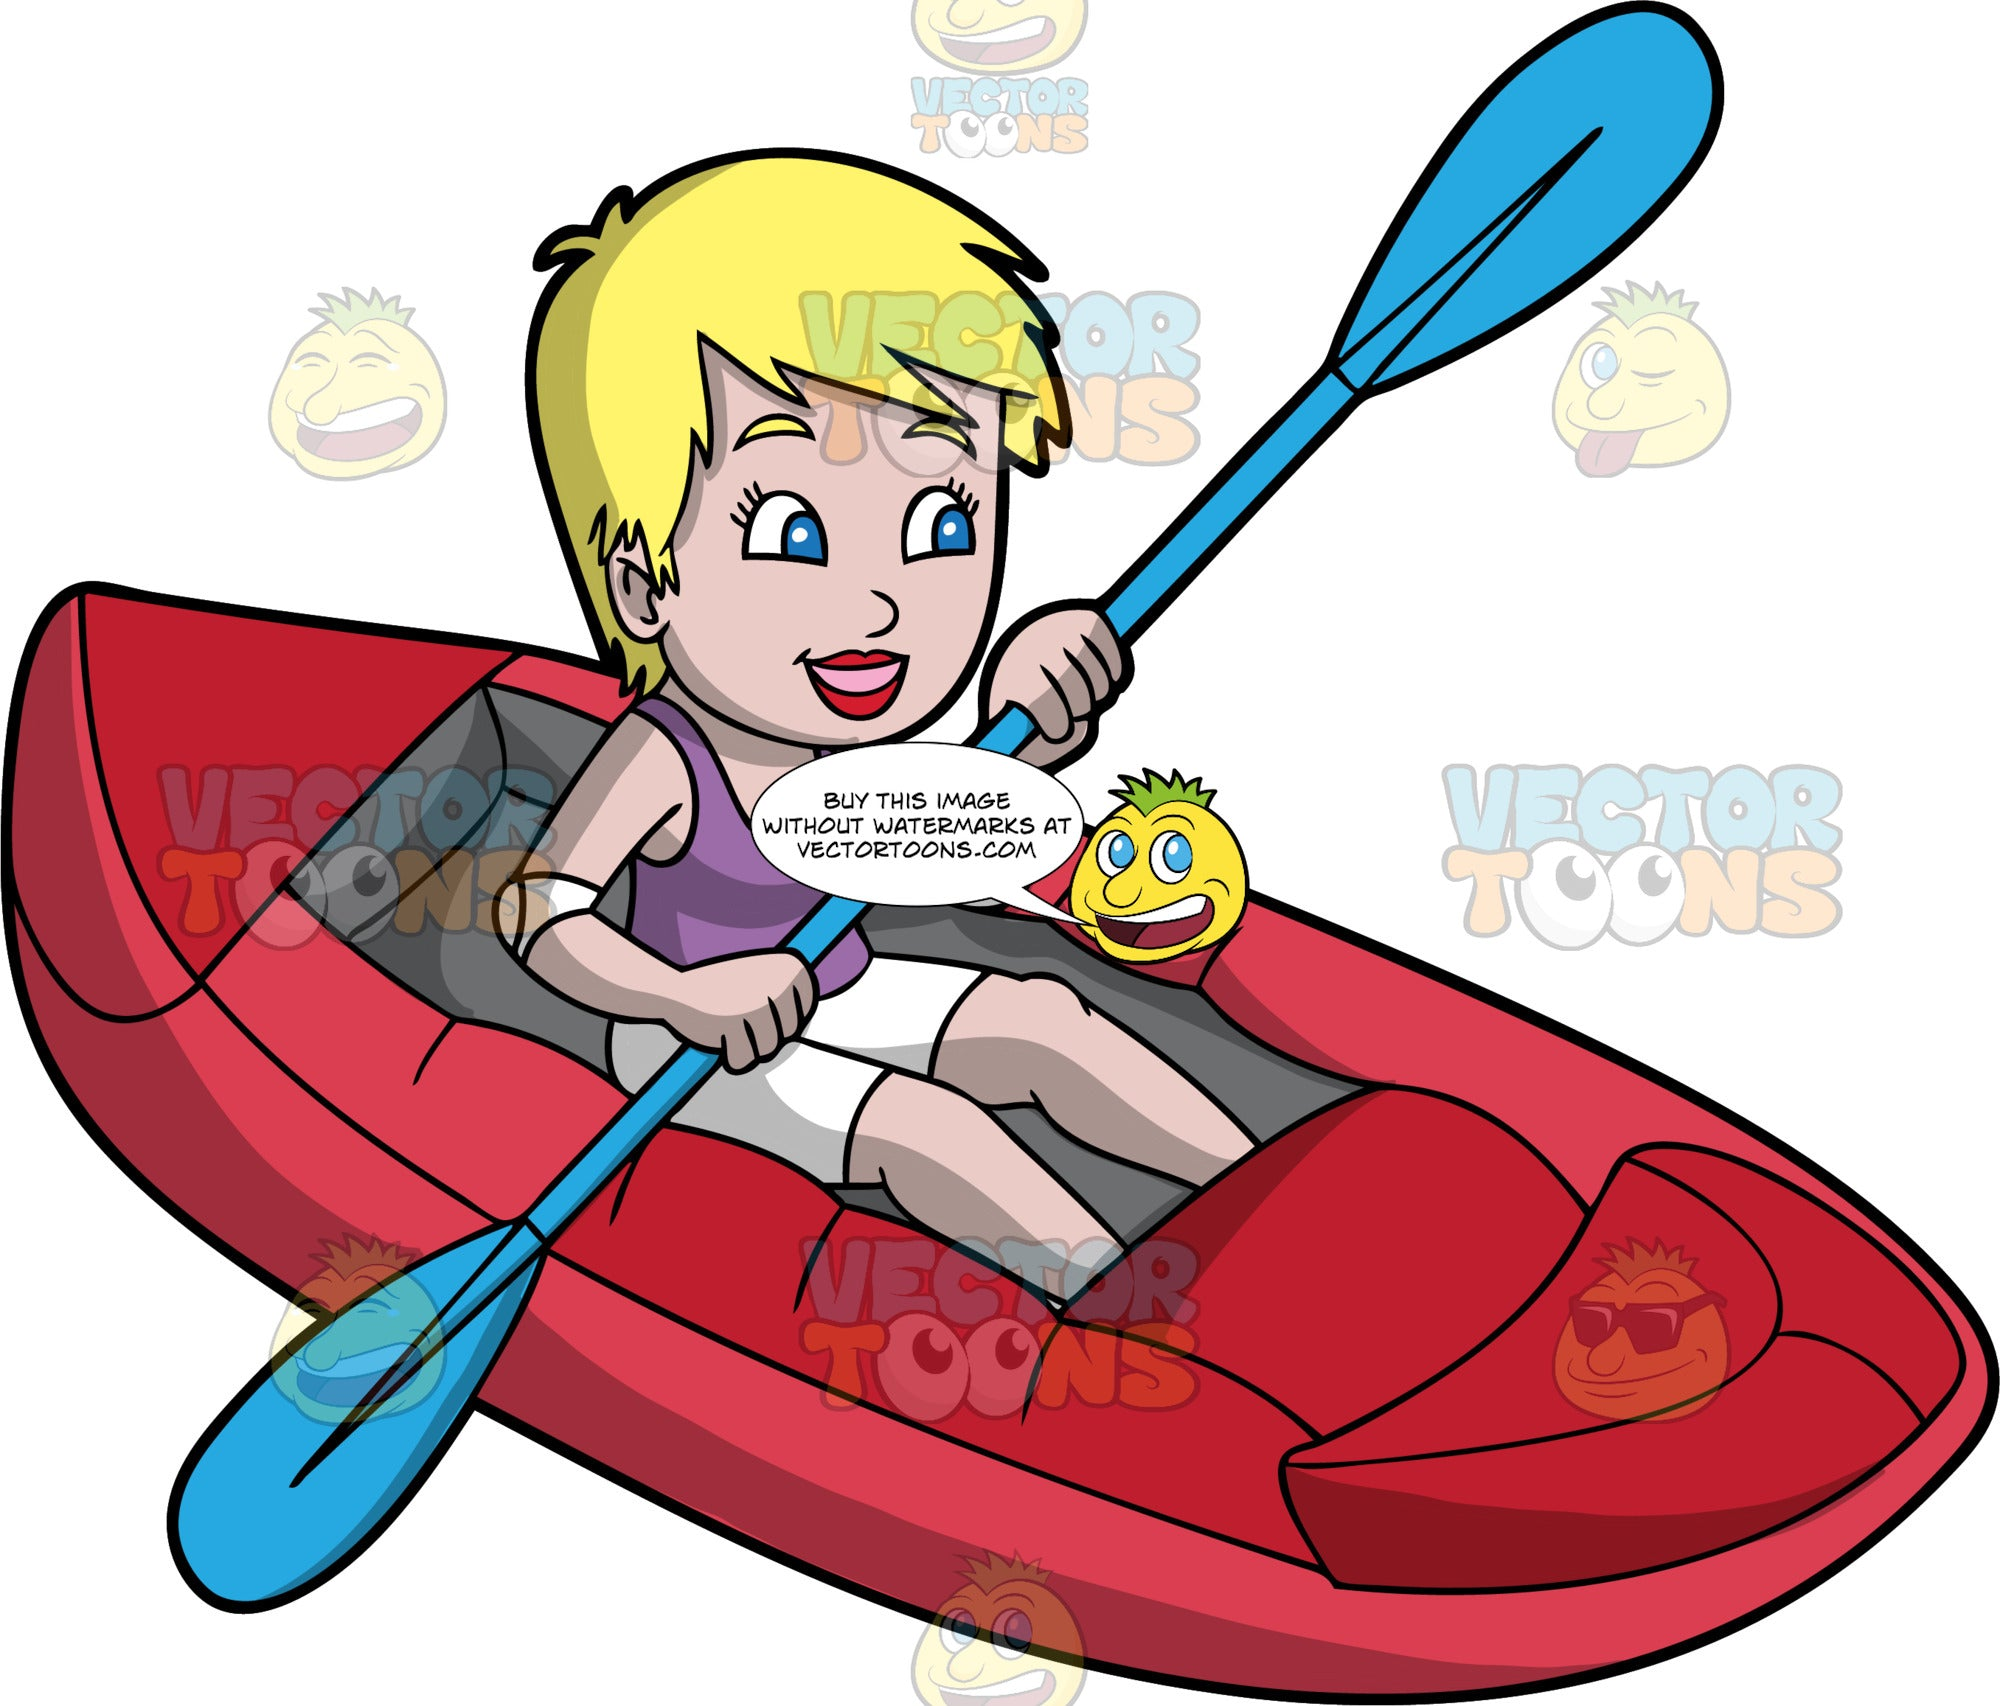 A Blonde Woman Enjoying A Day Out On Her Raft. A woman with short blonde hair and blue eyes, wearing white shorts and a purple tank top, smiles as uses a double bladed paddle to steer her red raft through calm waters